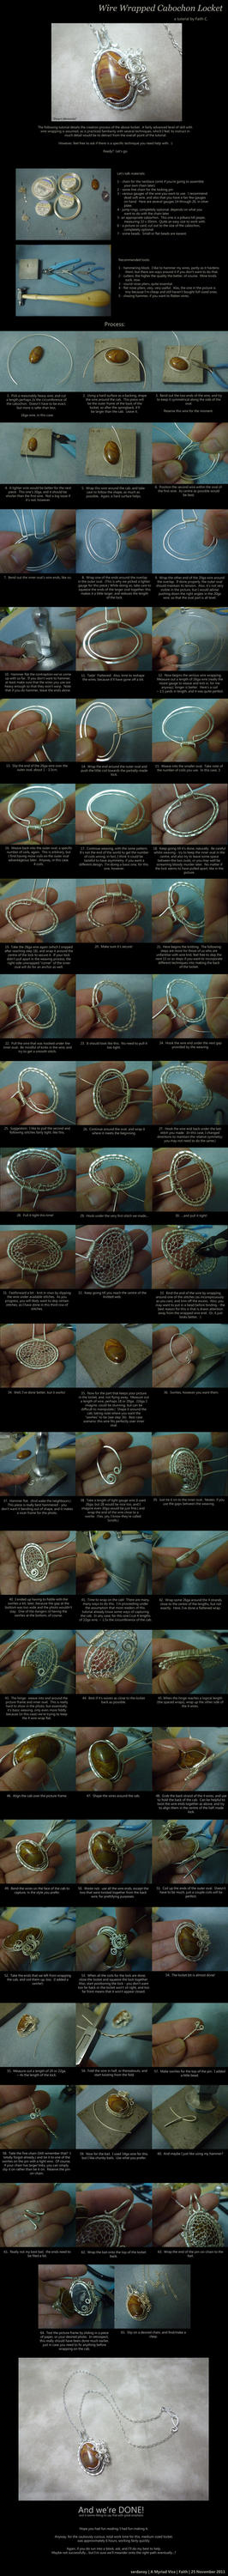 Wire Wrapped Cabochon Locket Tutorial by AMyriadVice